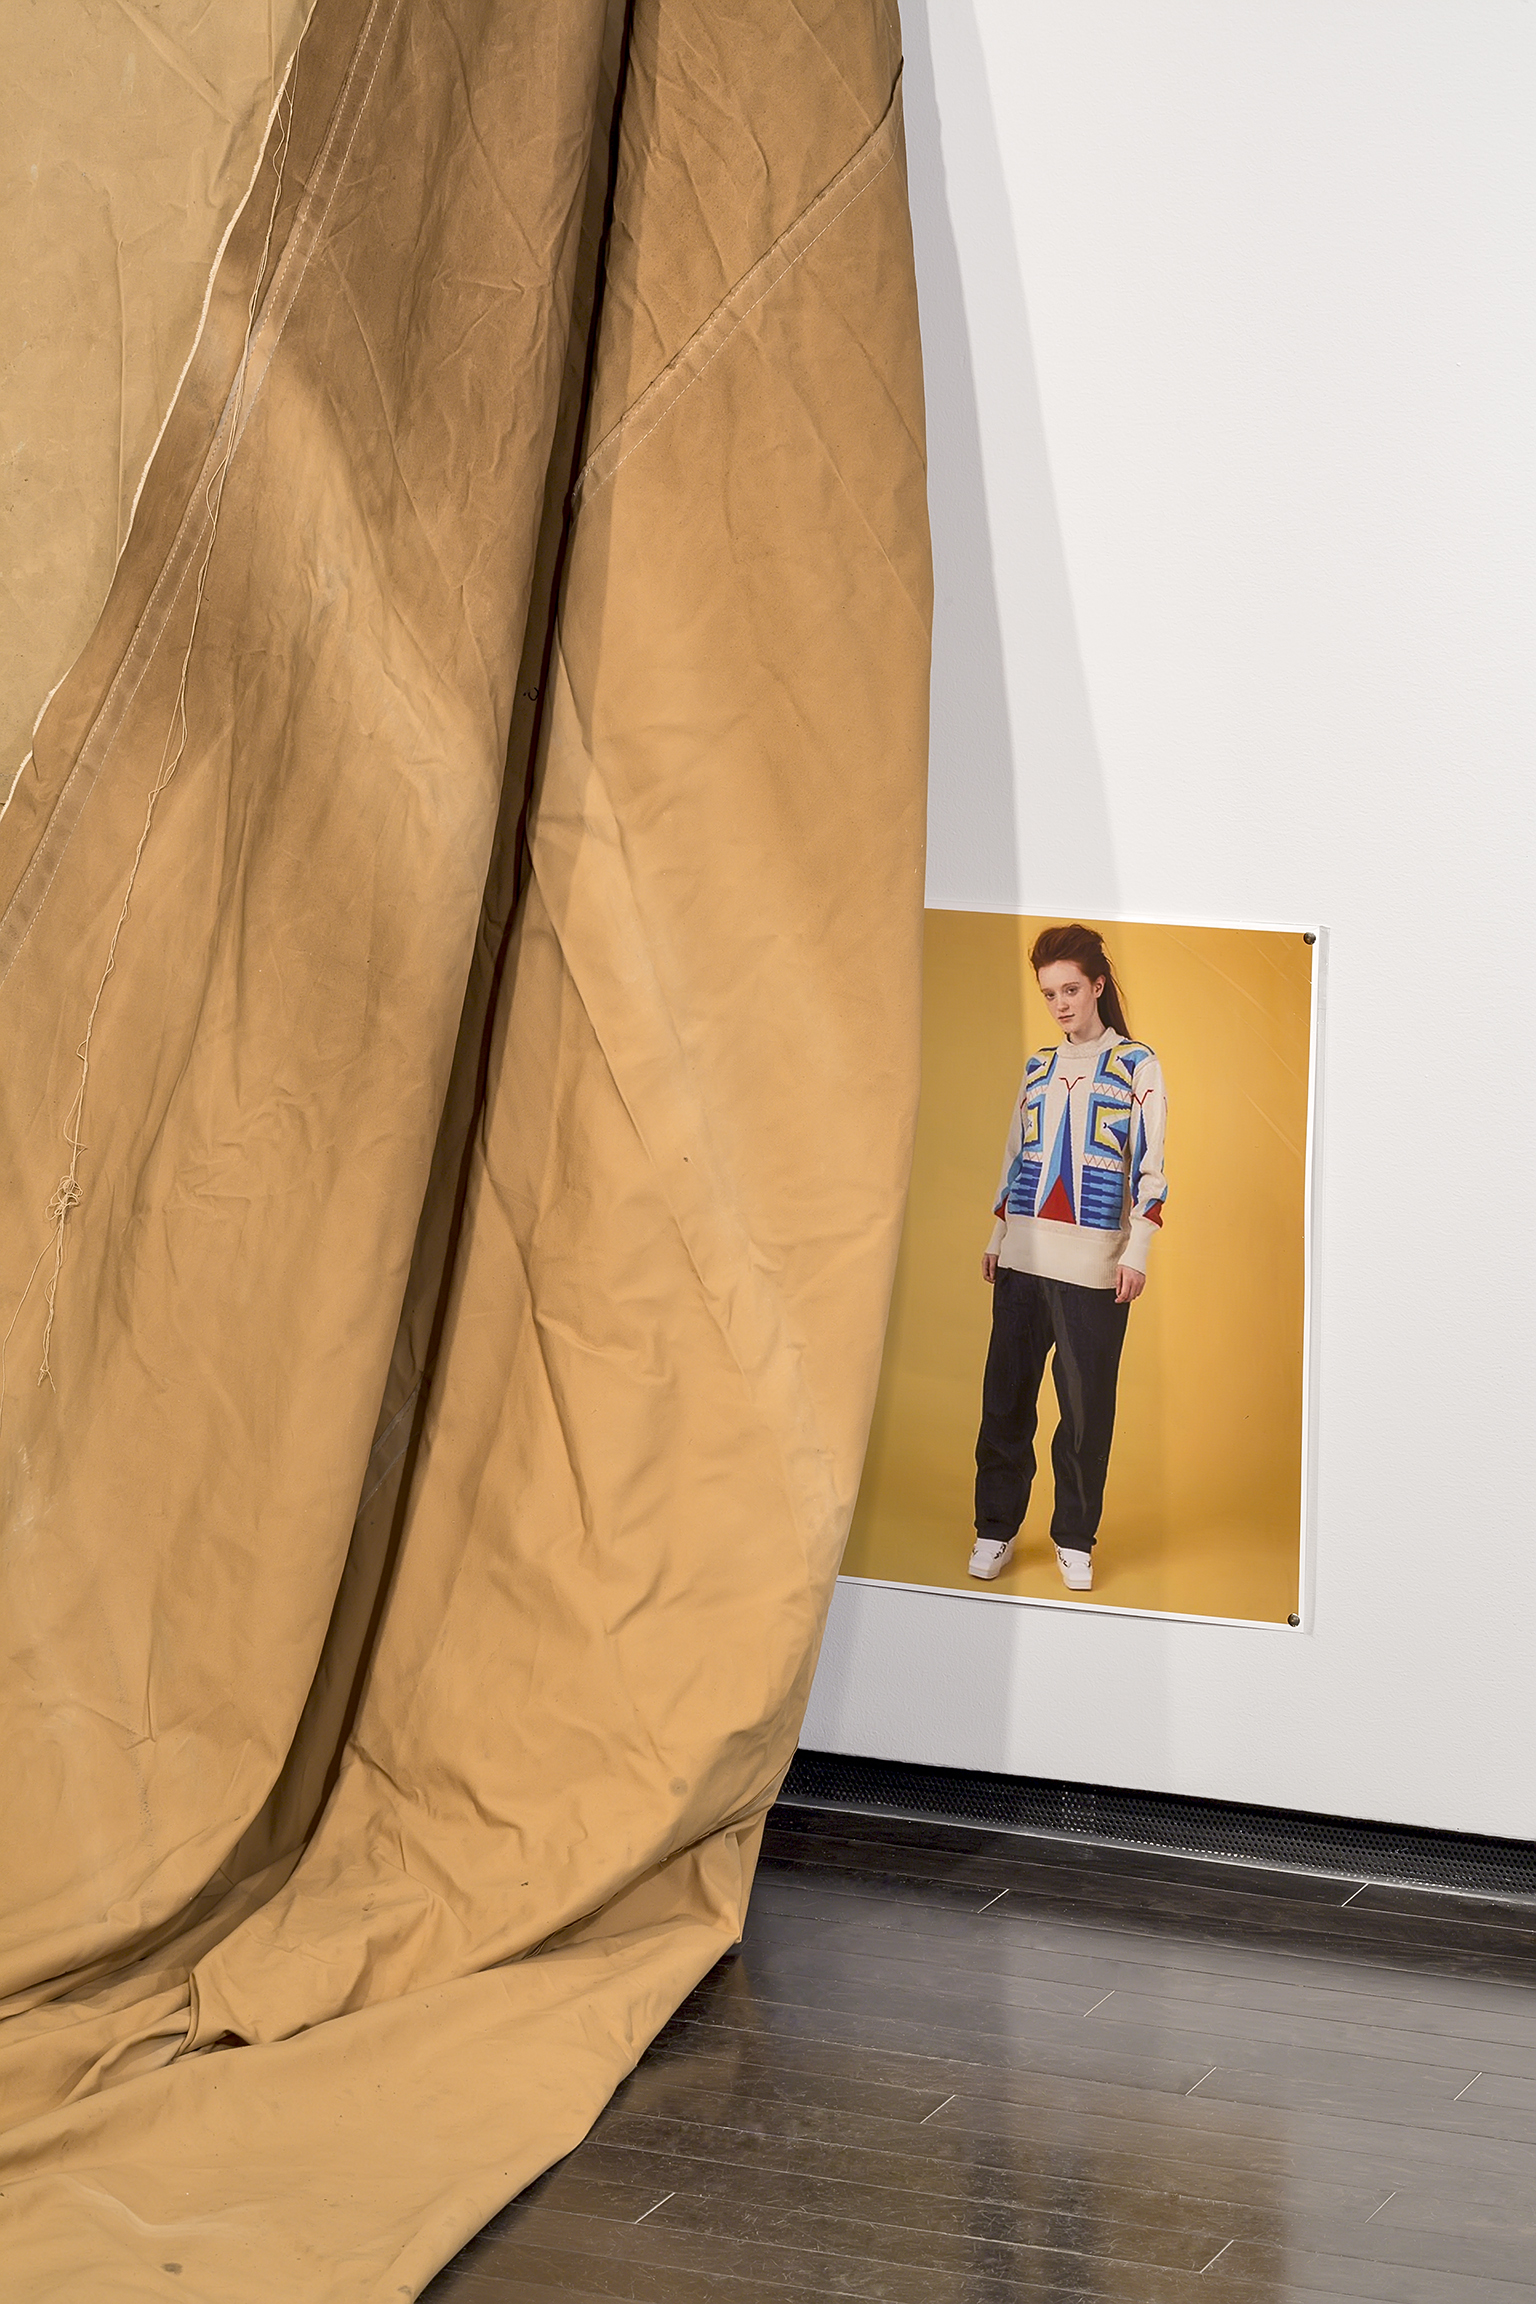 Duane Linklater, a gift from Doreen (detail), 2016, teepee canvas, nails, dimensions variable. Installation view, A Parallel Excavation, Art Gallery of Alberta, Edmonton, Canada, 2016 by